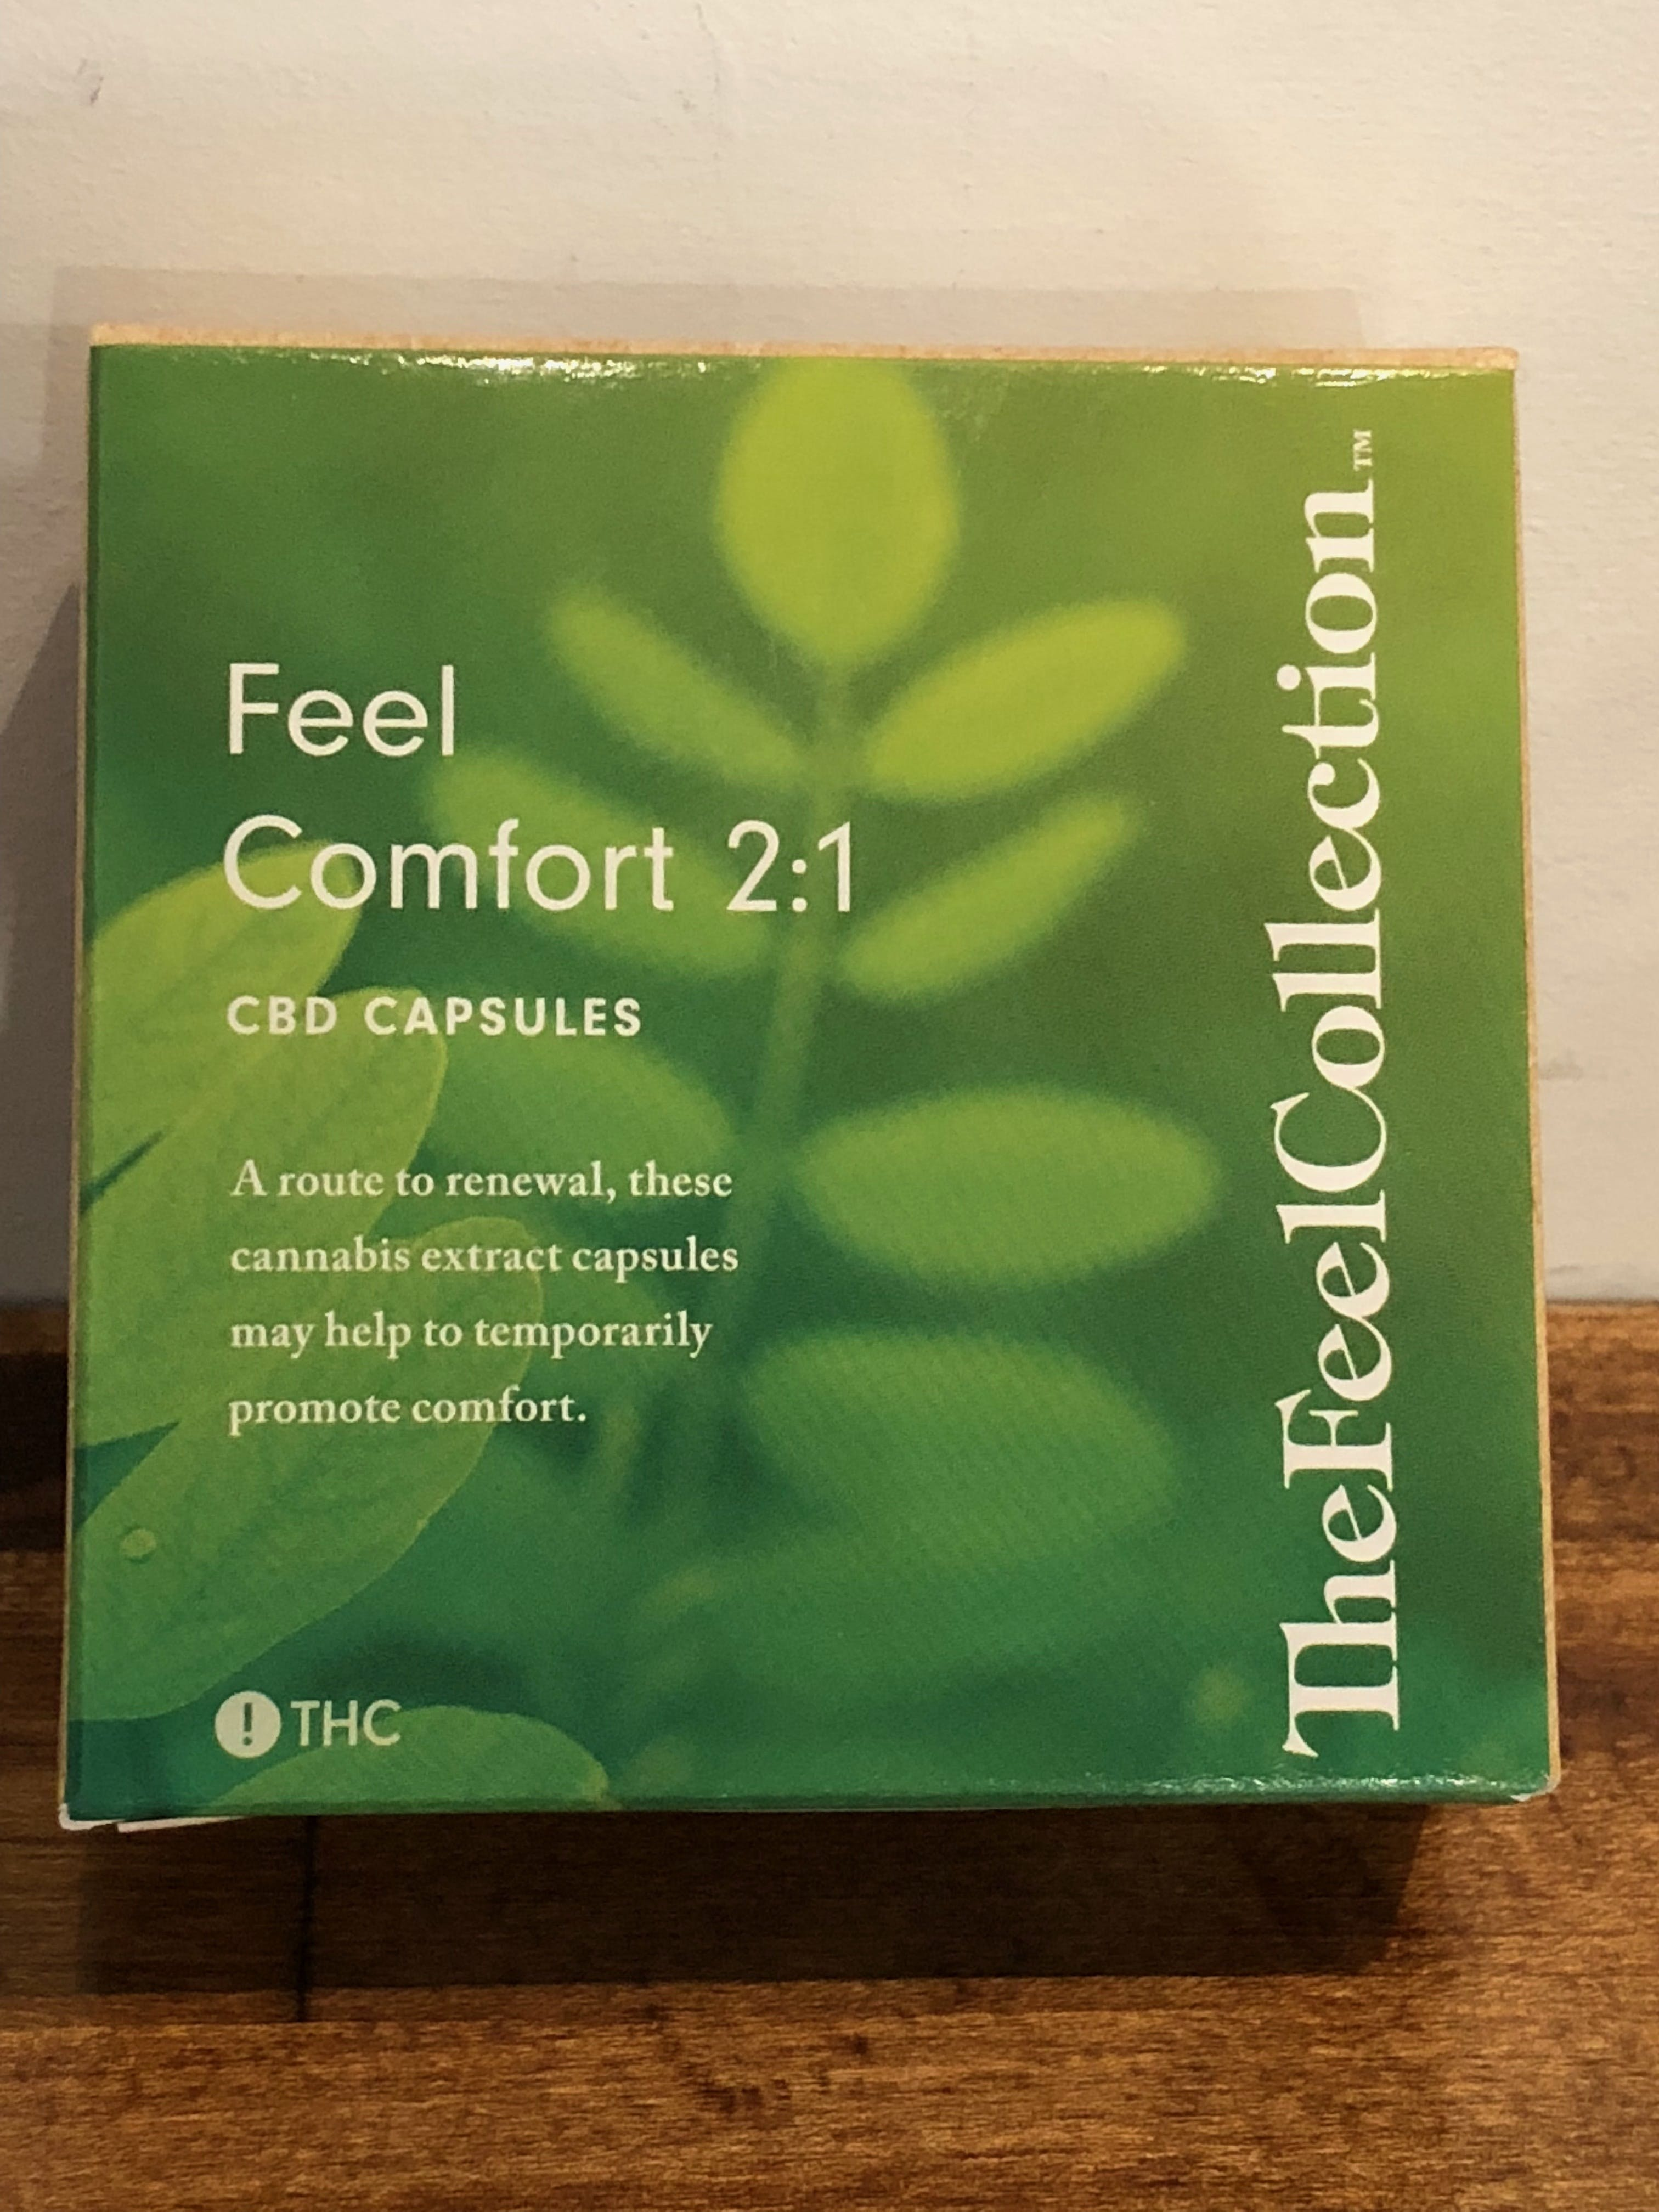 edible-21-feel-comfort-cbd-capsules